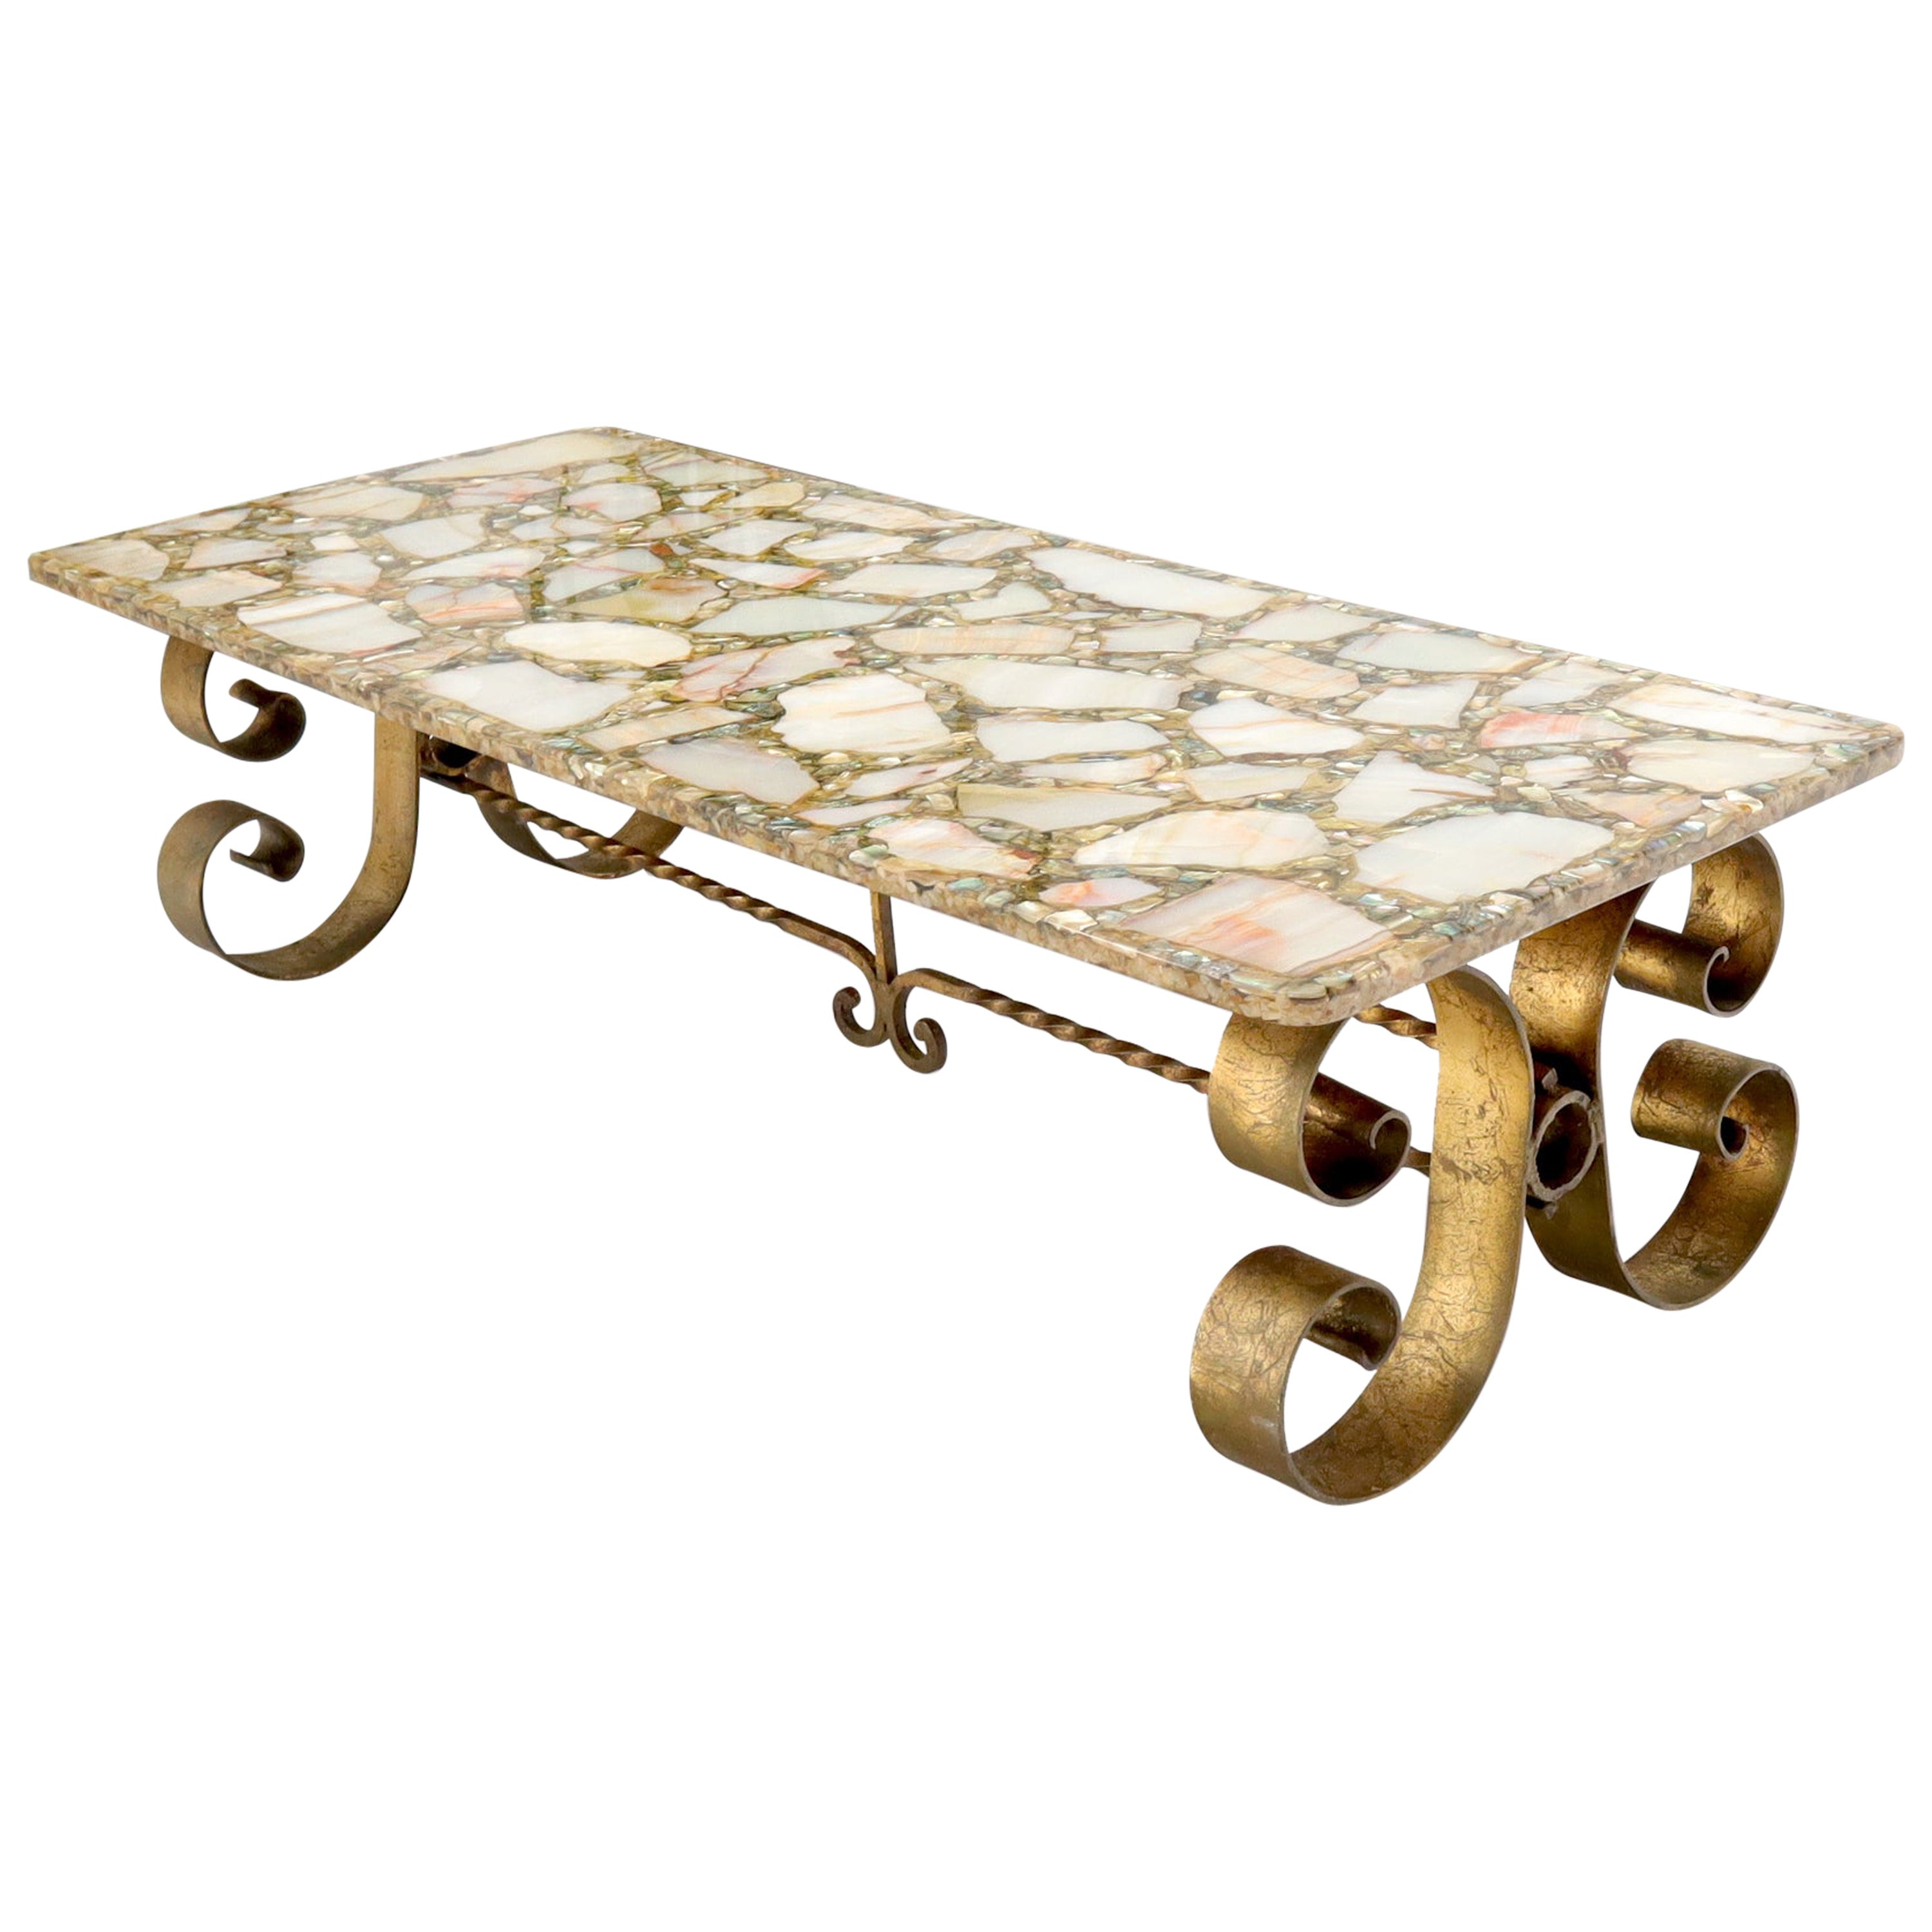 Hollywood Regency Mid-Century Modern Abalone and Onyx Molded-Top Coffee Table